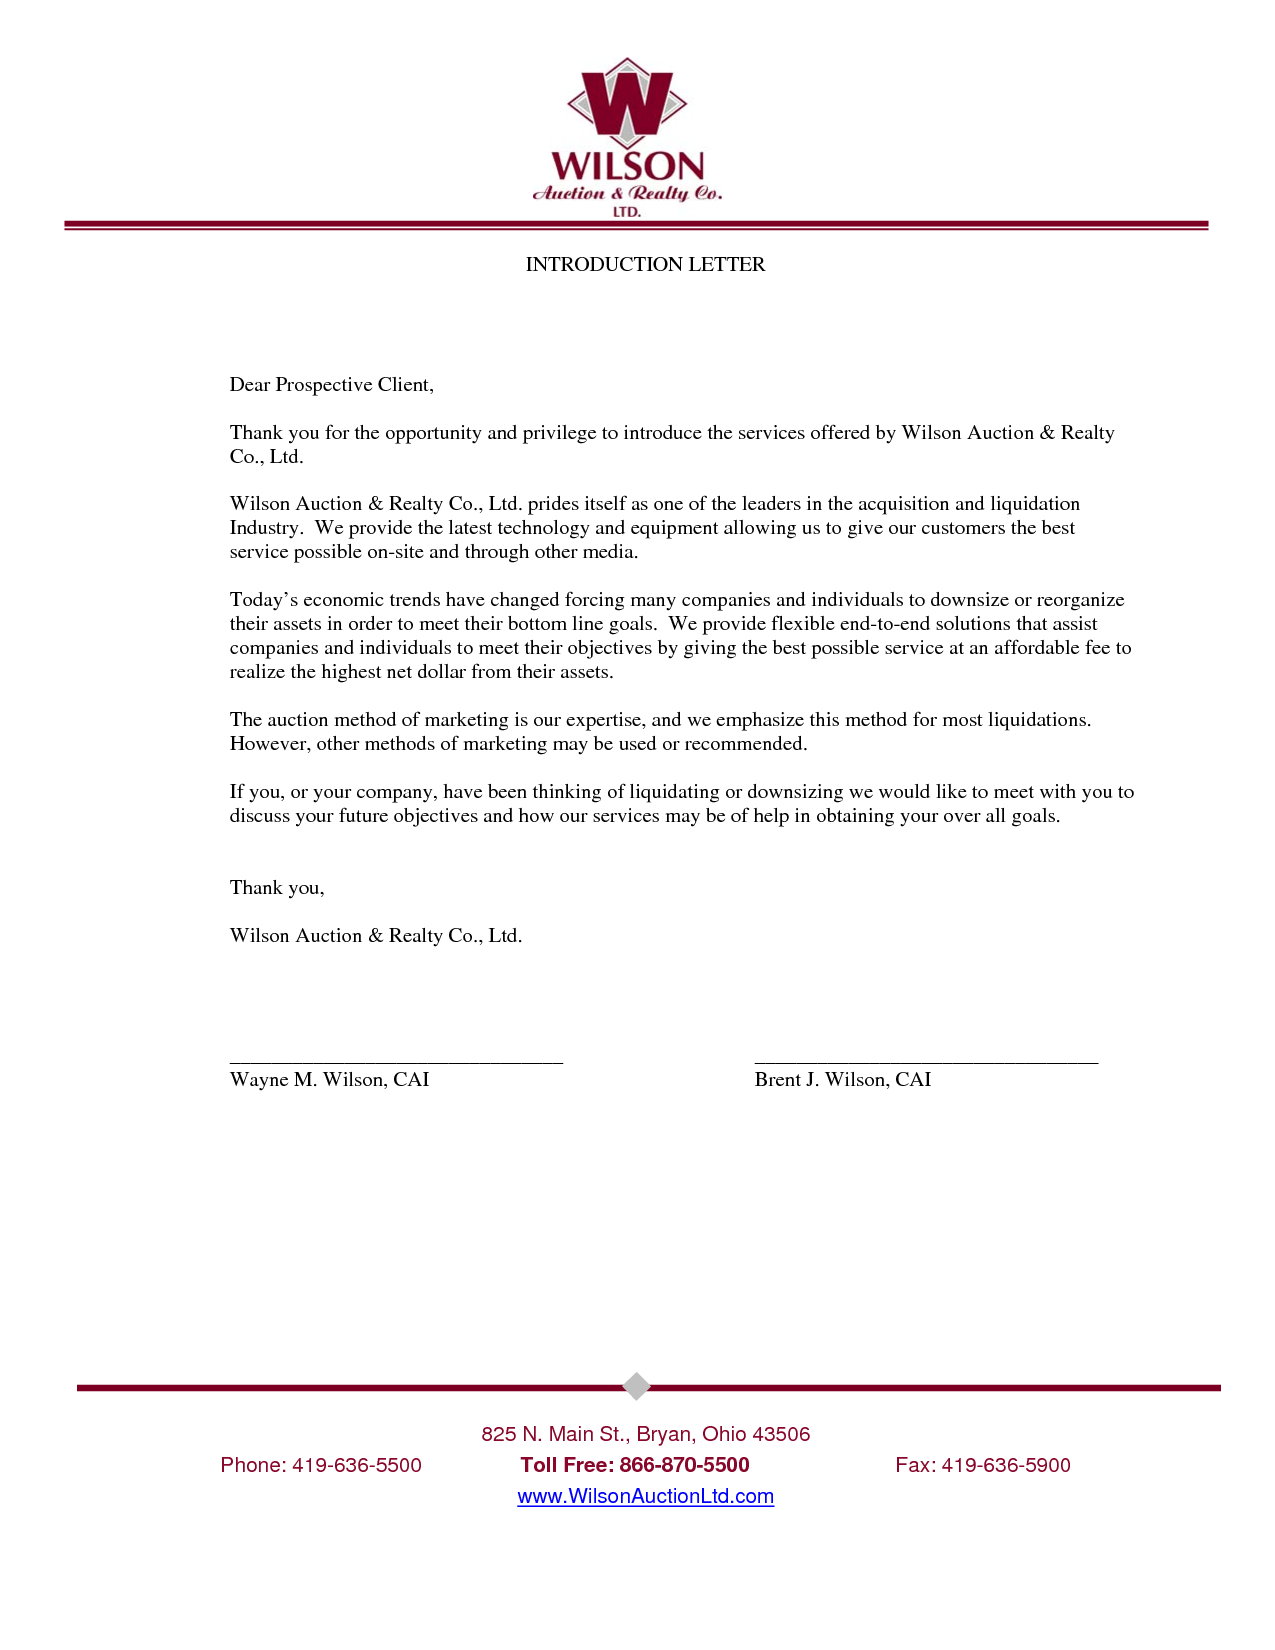 Company Business Letter | Company Introduction Letter For New Business Scrumps